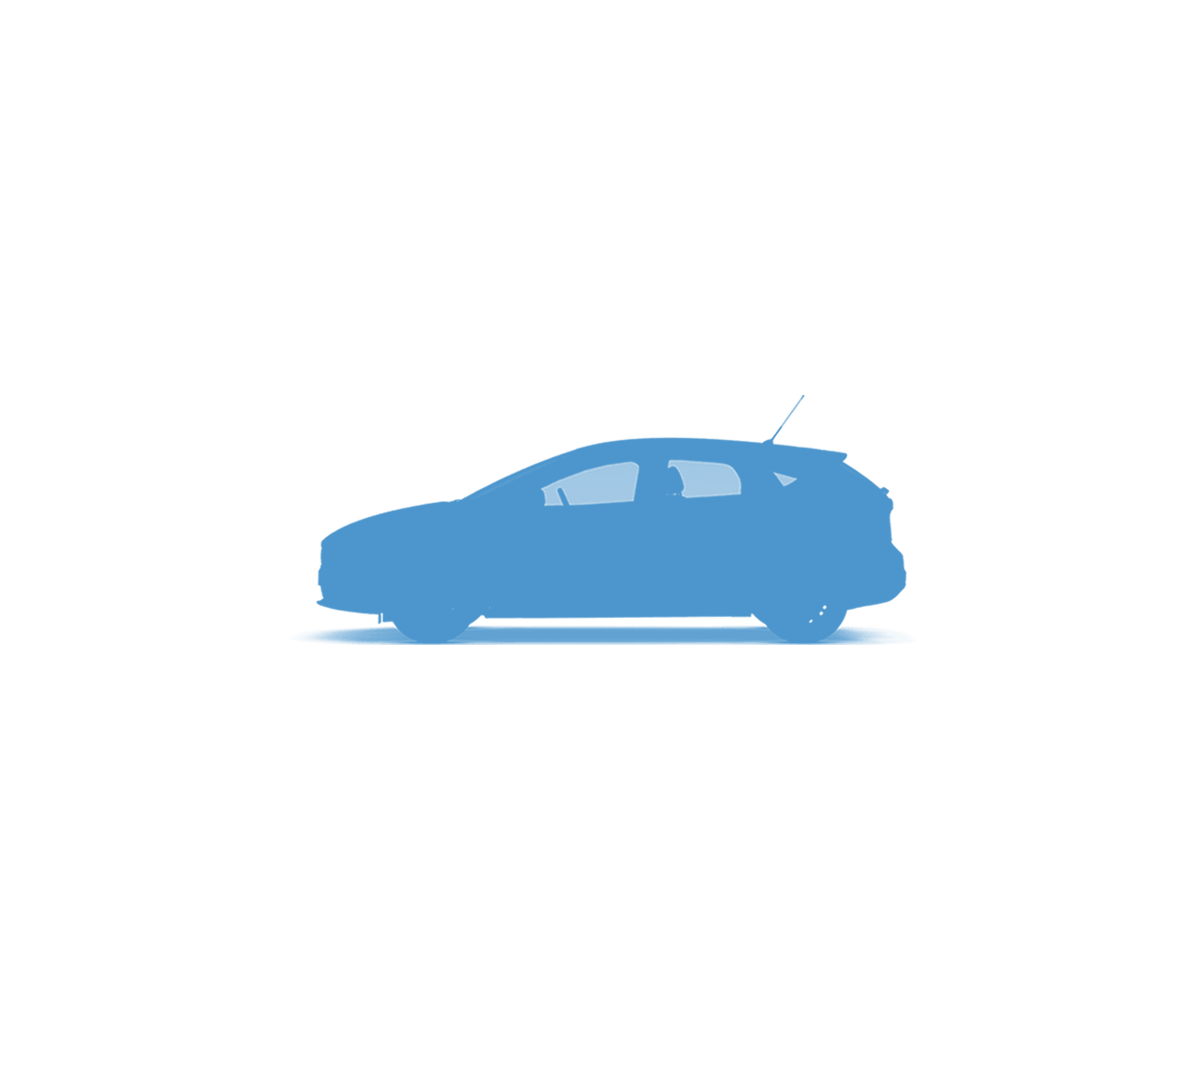 ford-motorcraft-eu-Focus-9x8-1200x1067-icon.png.renditions.extra-large.png